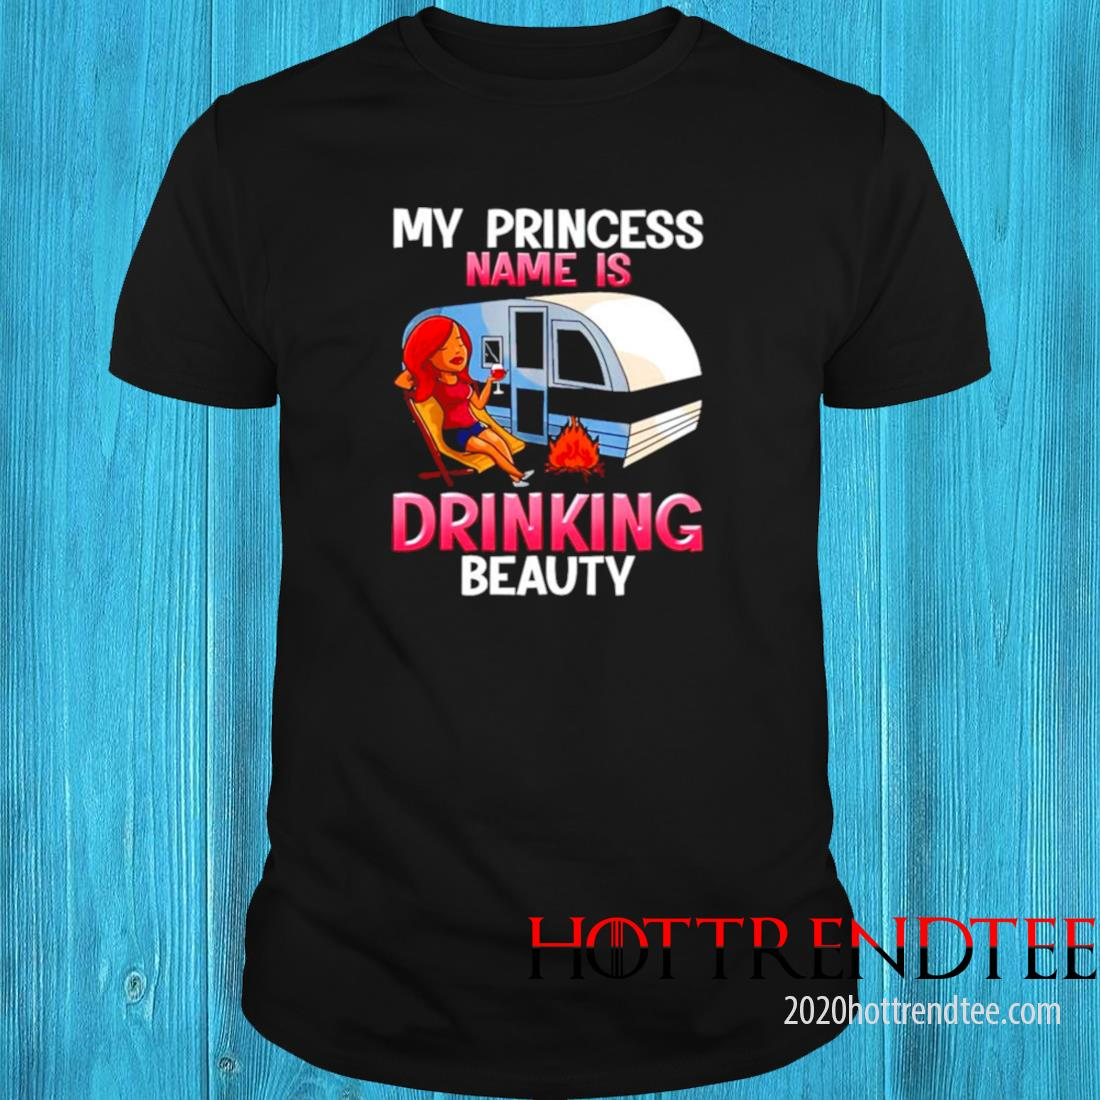 My Princess Name Is Drinking Beauty Shirt